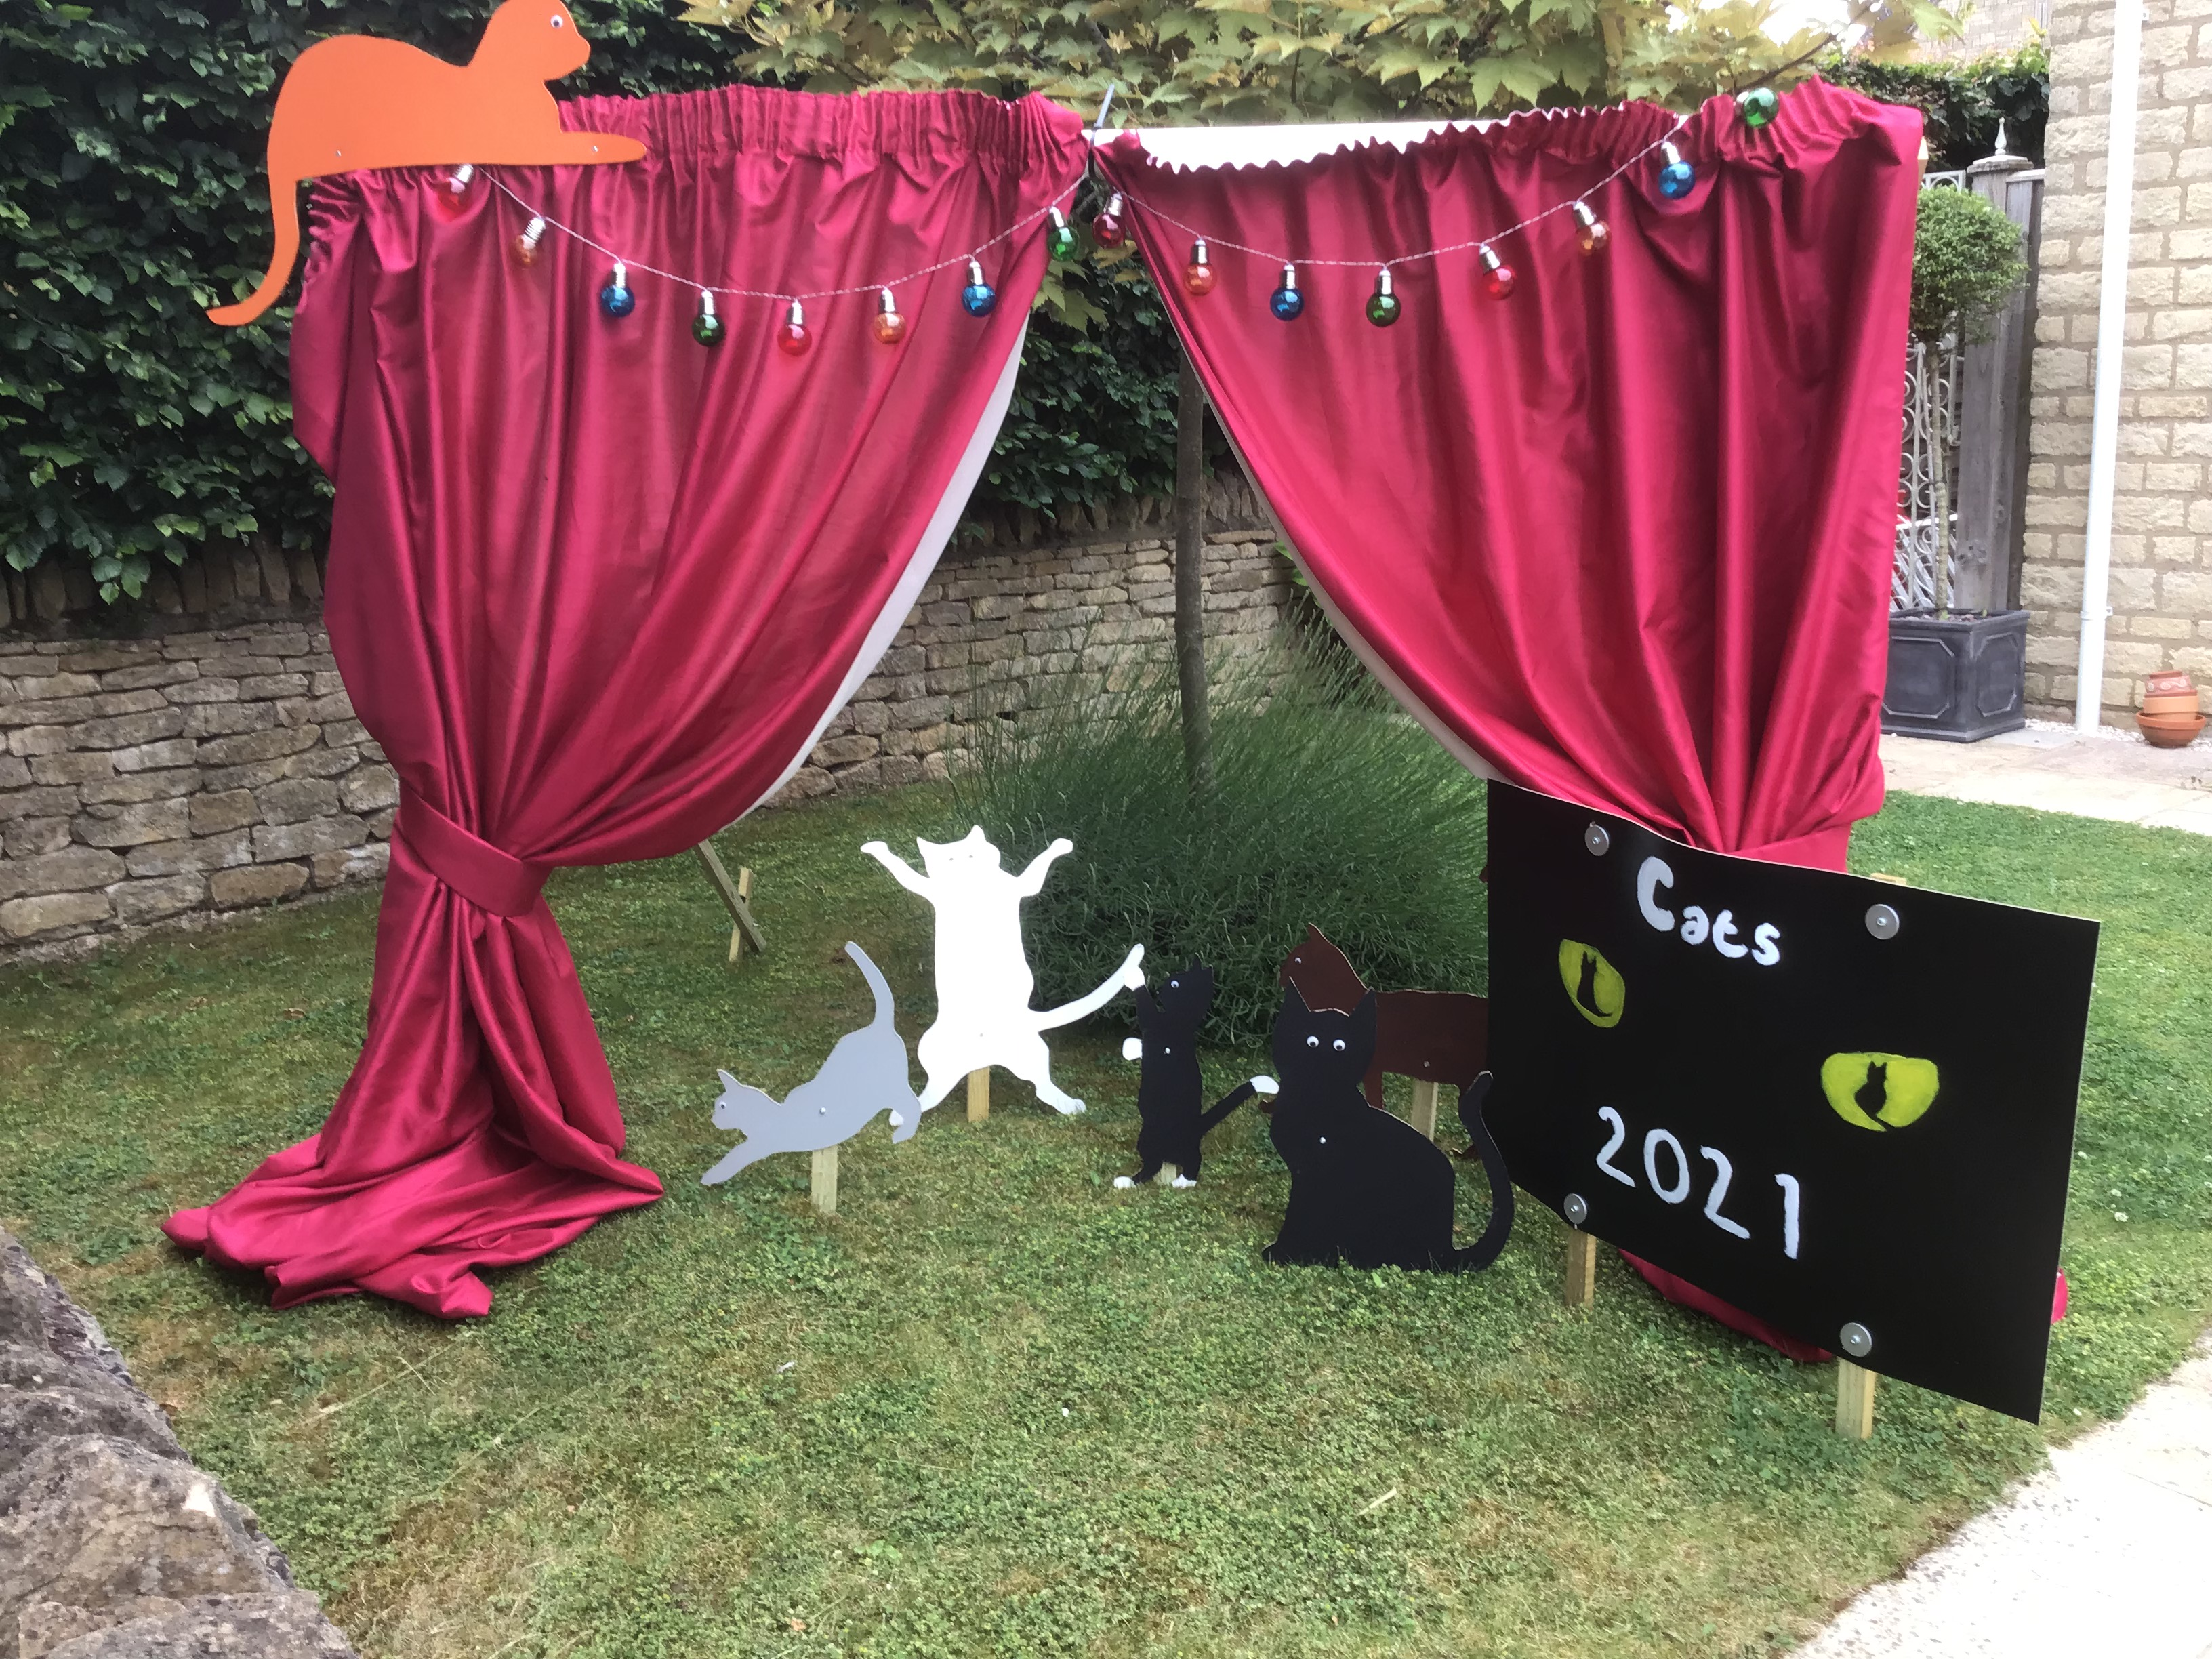 Willersey Scarecrow 21 2021